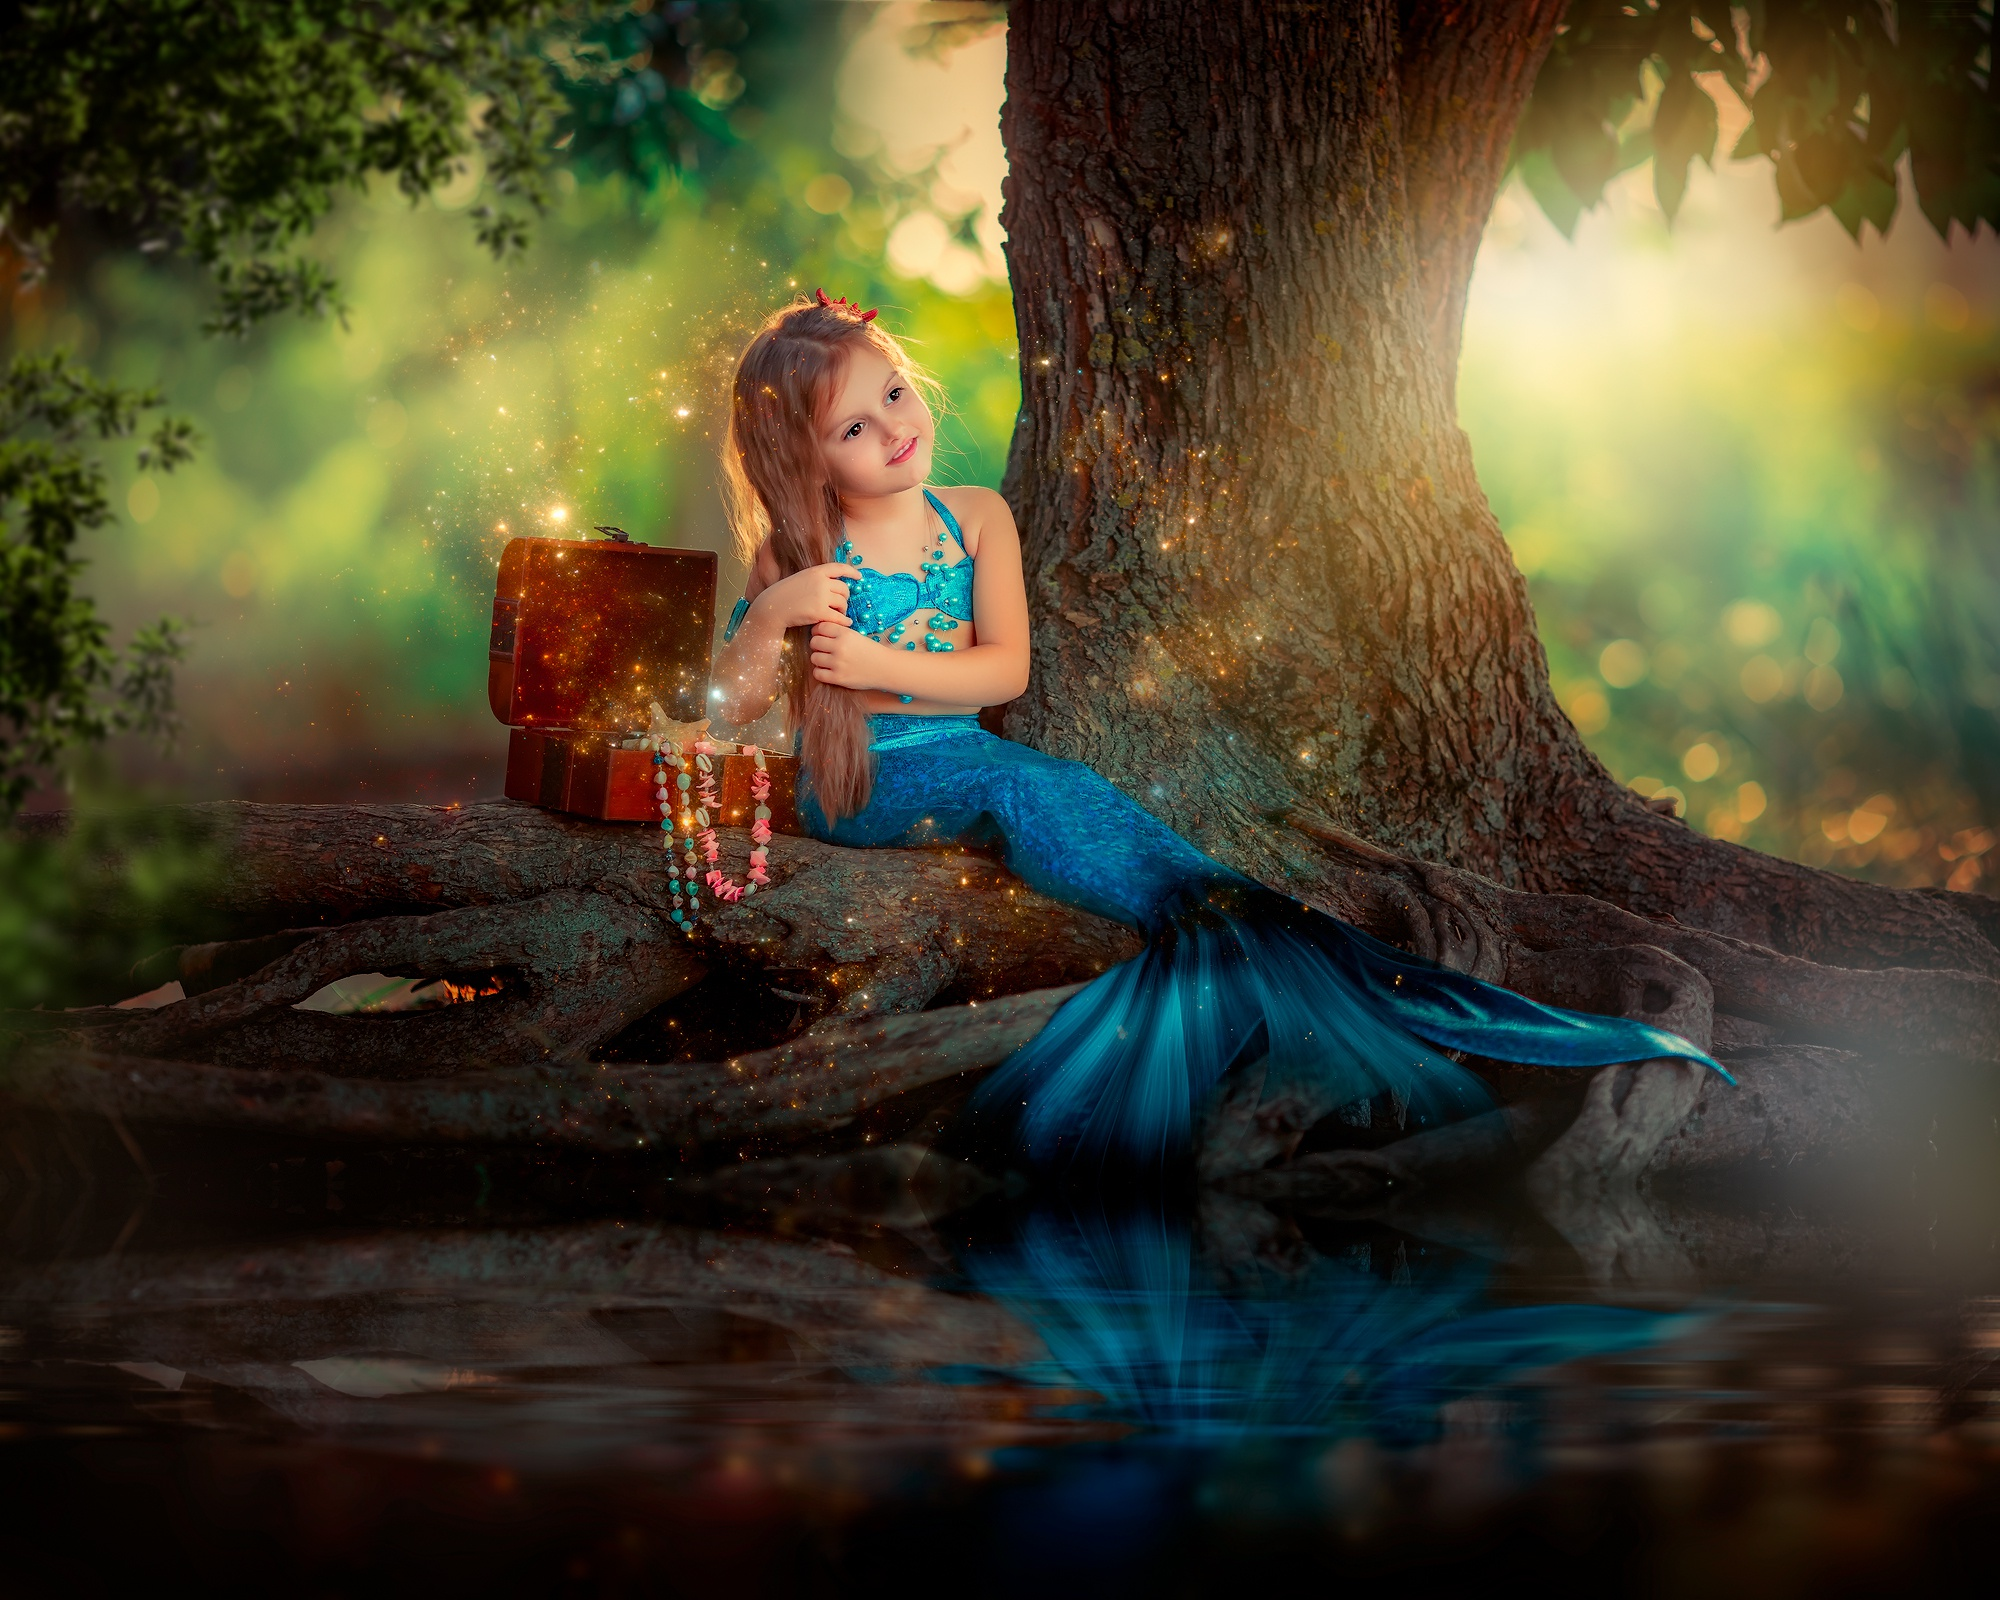 Little Mermaid Girl Hd Cute 4k Wallpapers Images Backgrounds Photos And Pictures